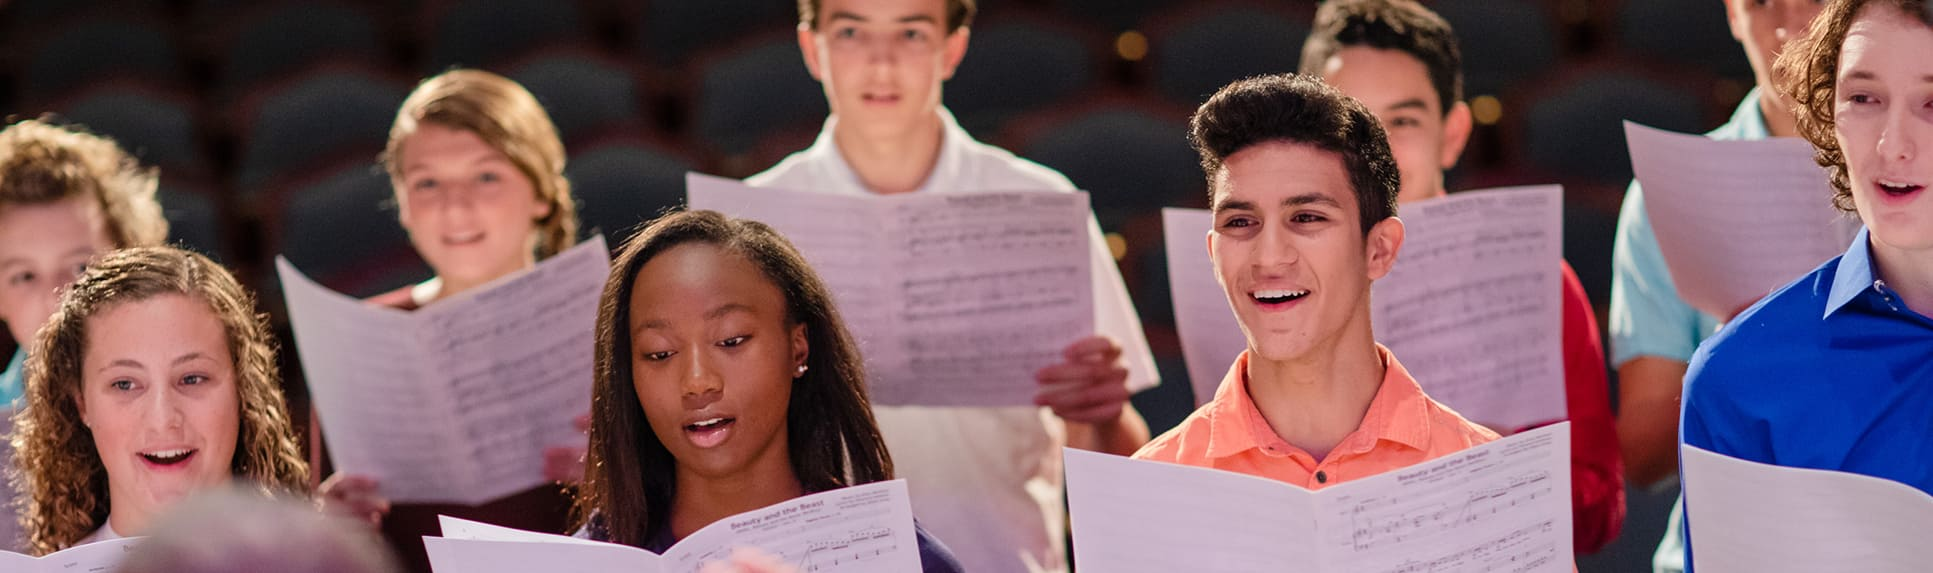 A teen choir singing as they're led by a conductor